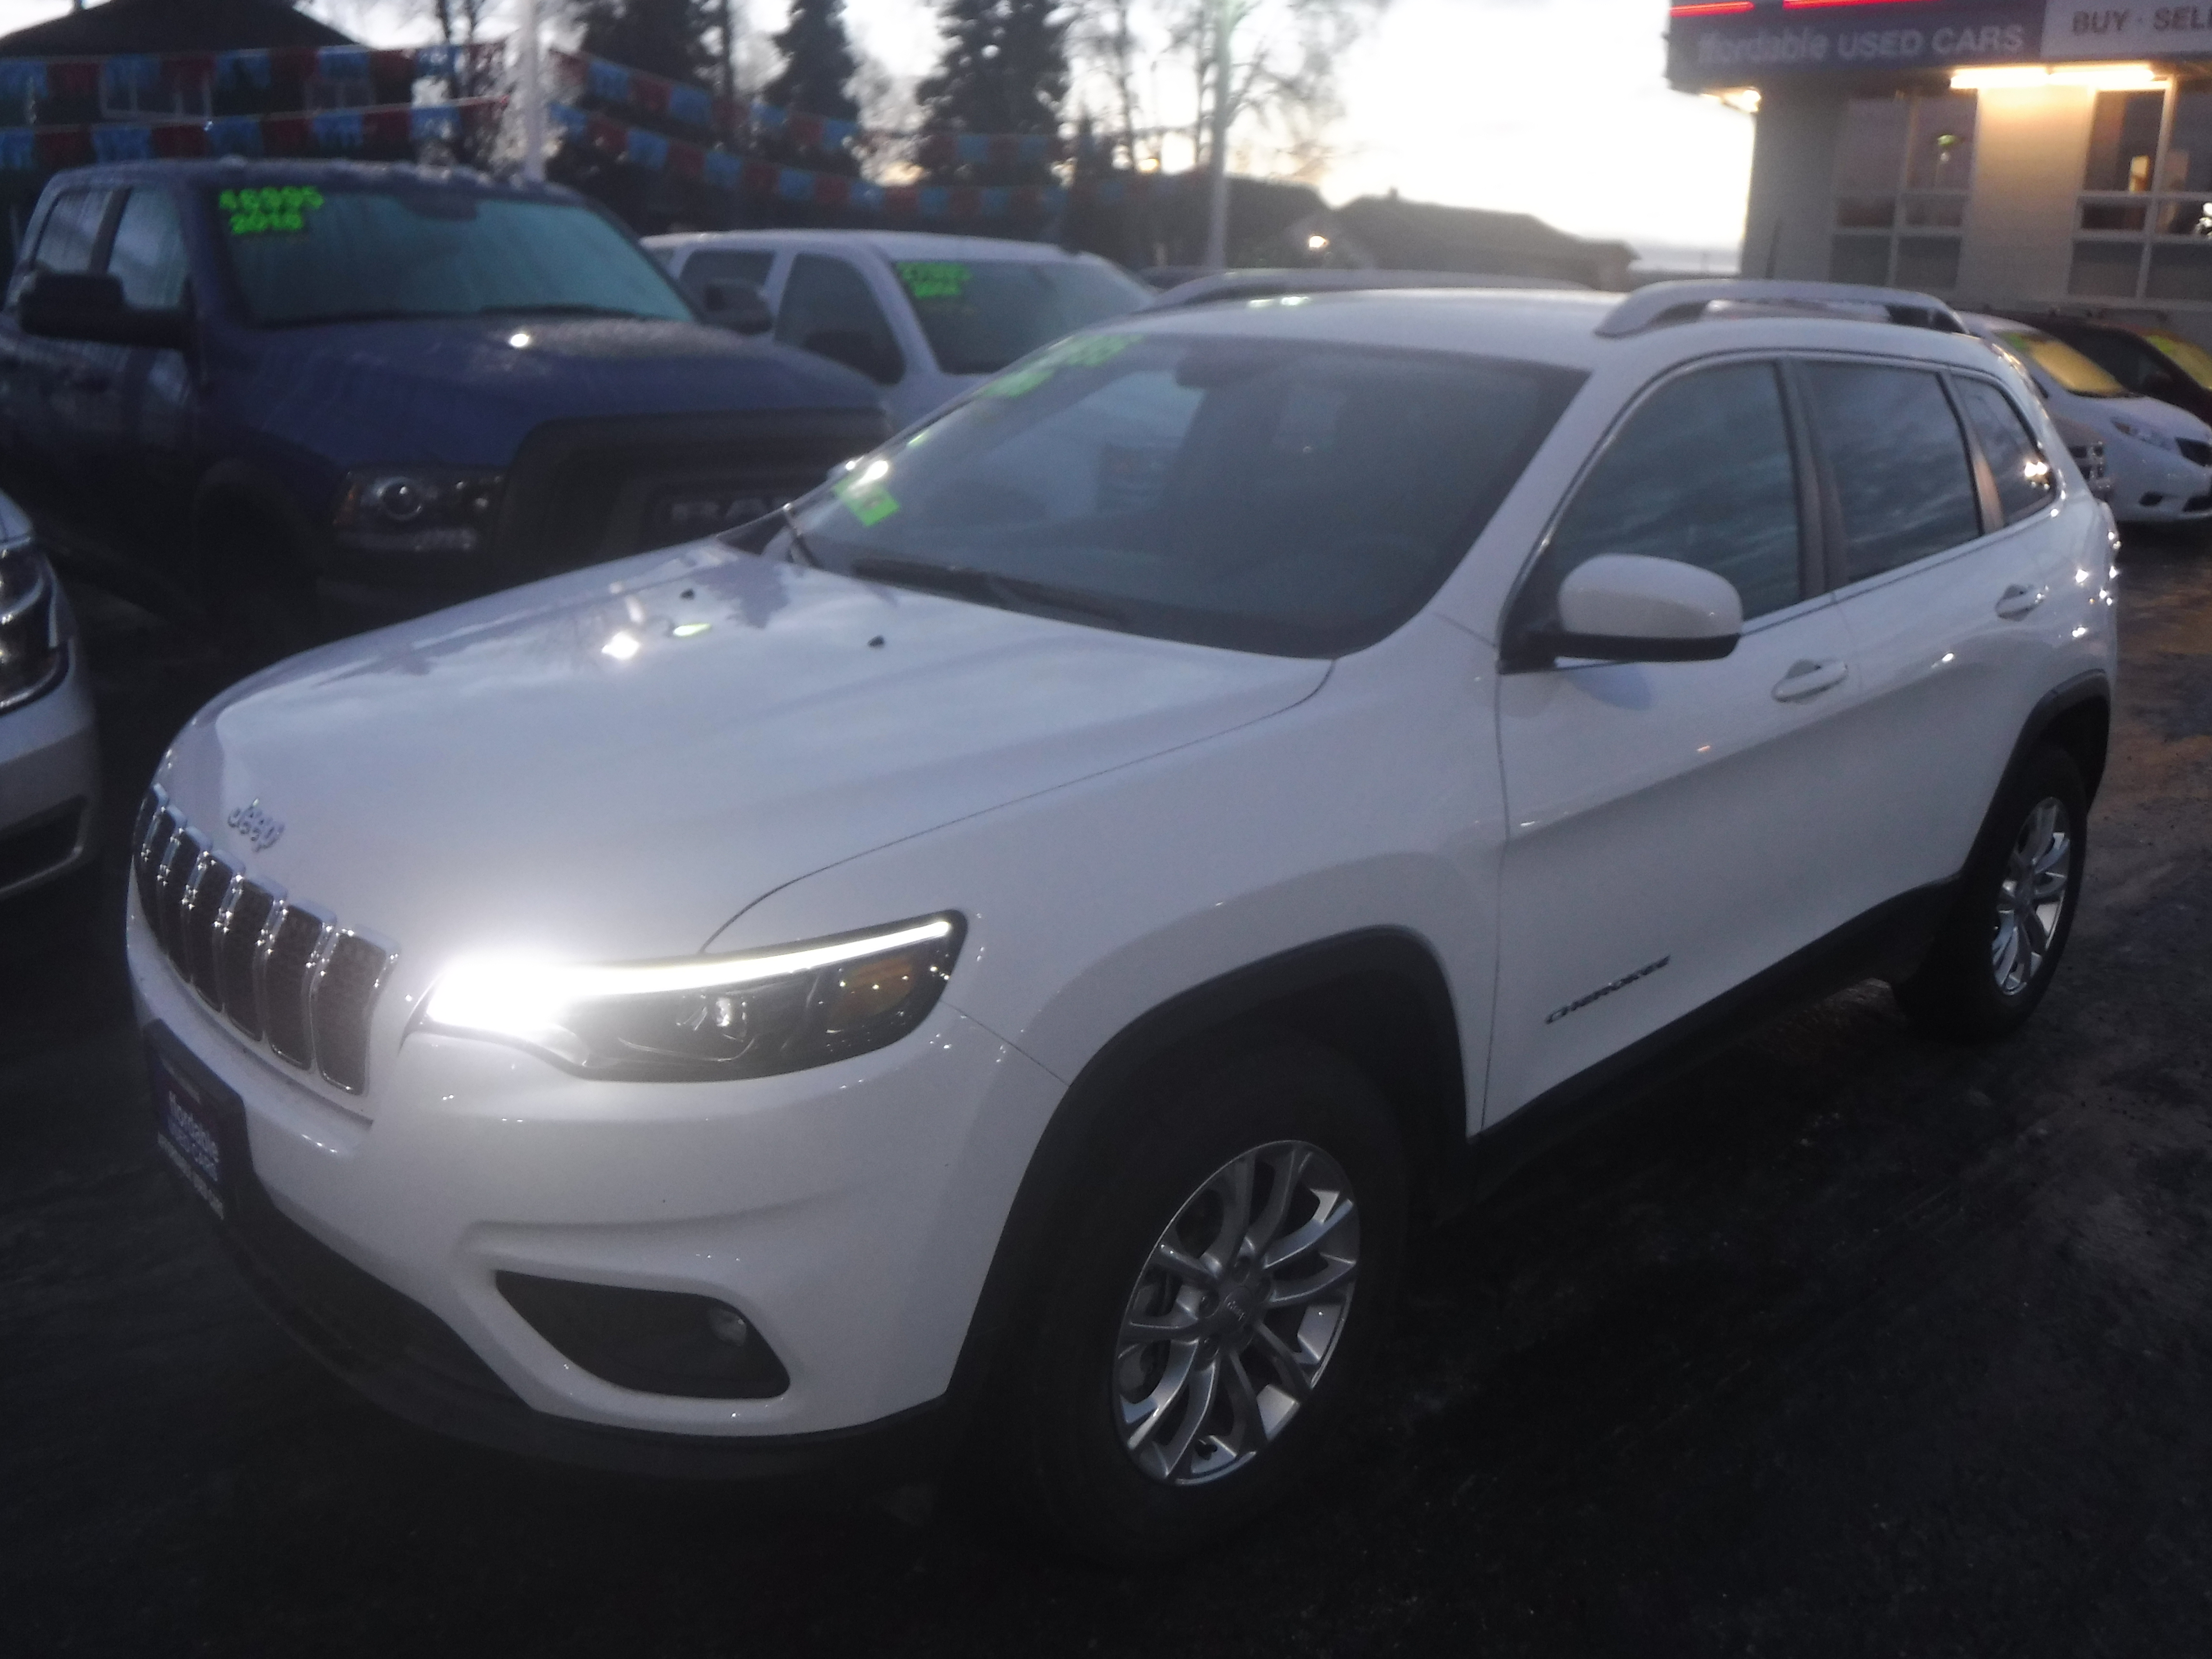 Jeep Used Cars >> Affordable Used Cars Inc. Anchorage :: Affordable Used Cars Inc. Anchorage - 2019 Jeep Cherokee ...